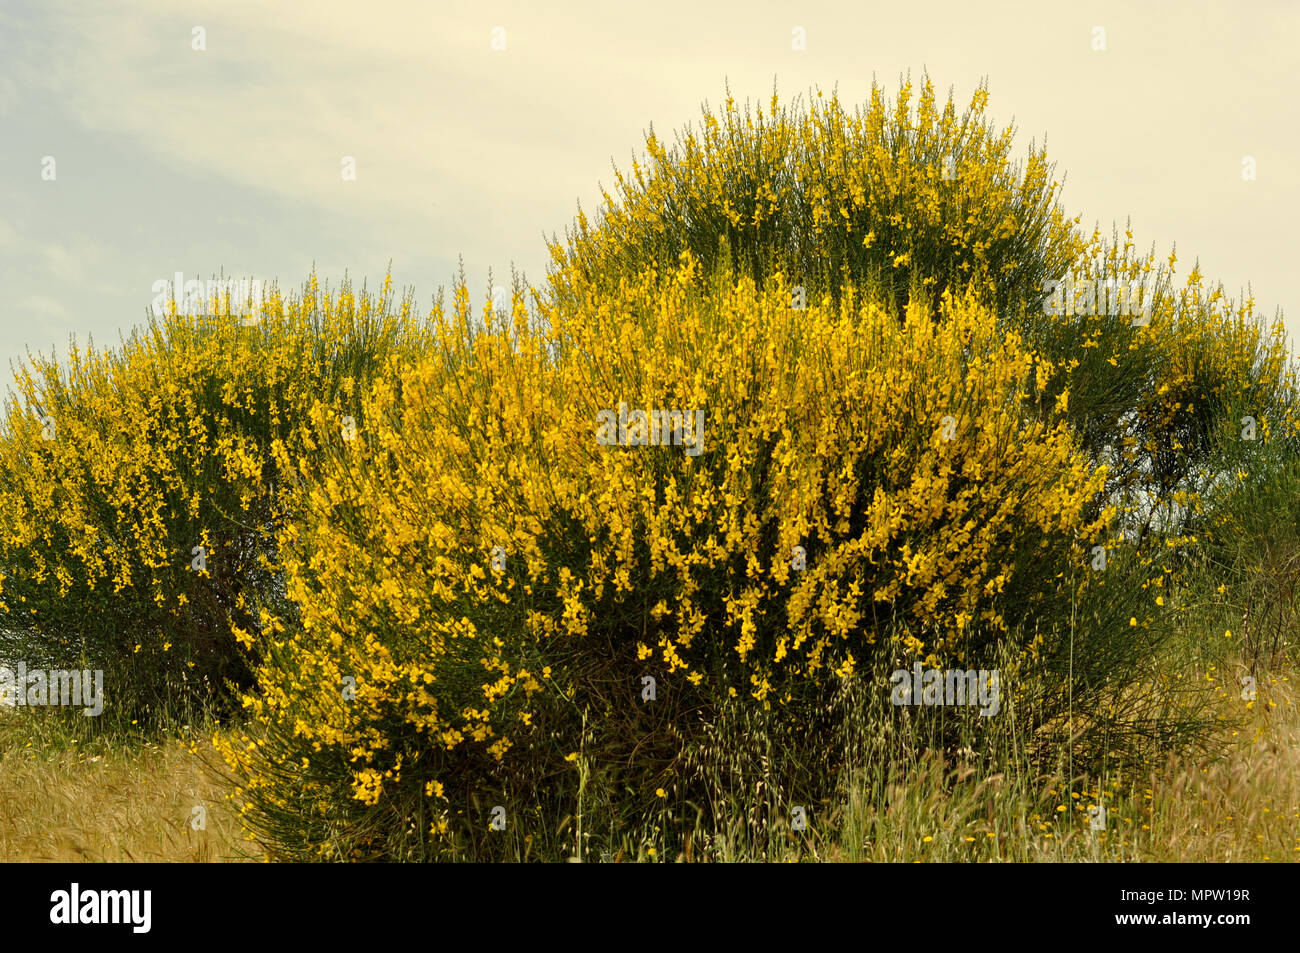 Broom Bushes With Yellow Flowers Stock Photo 186175971 Alamy